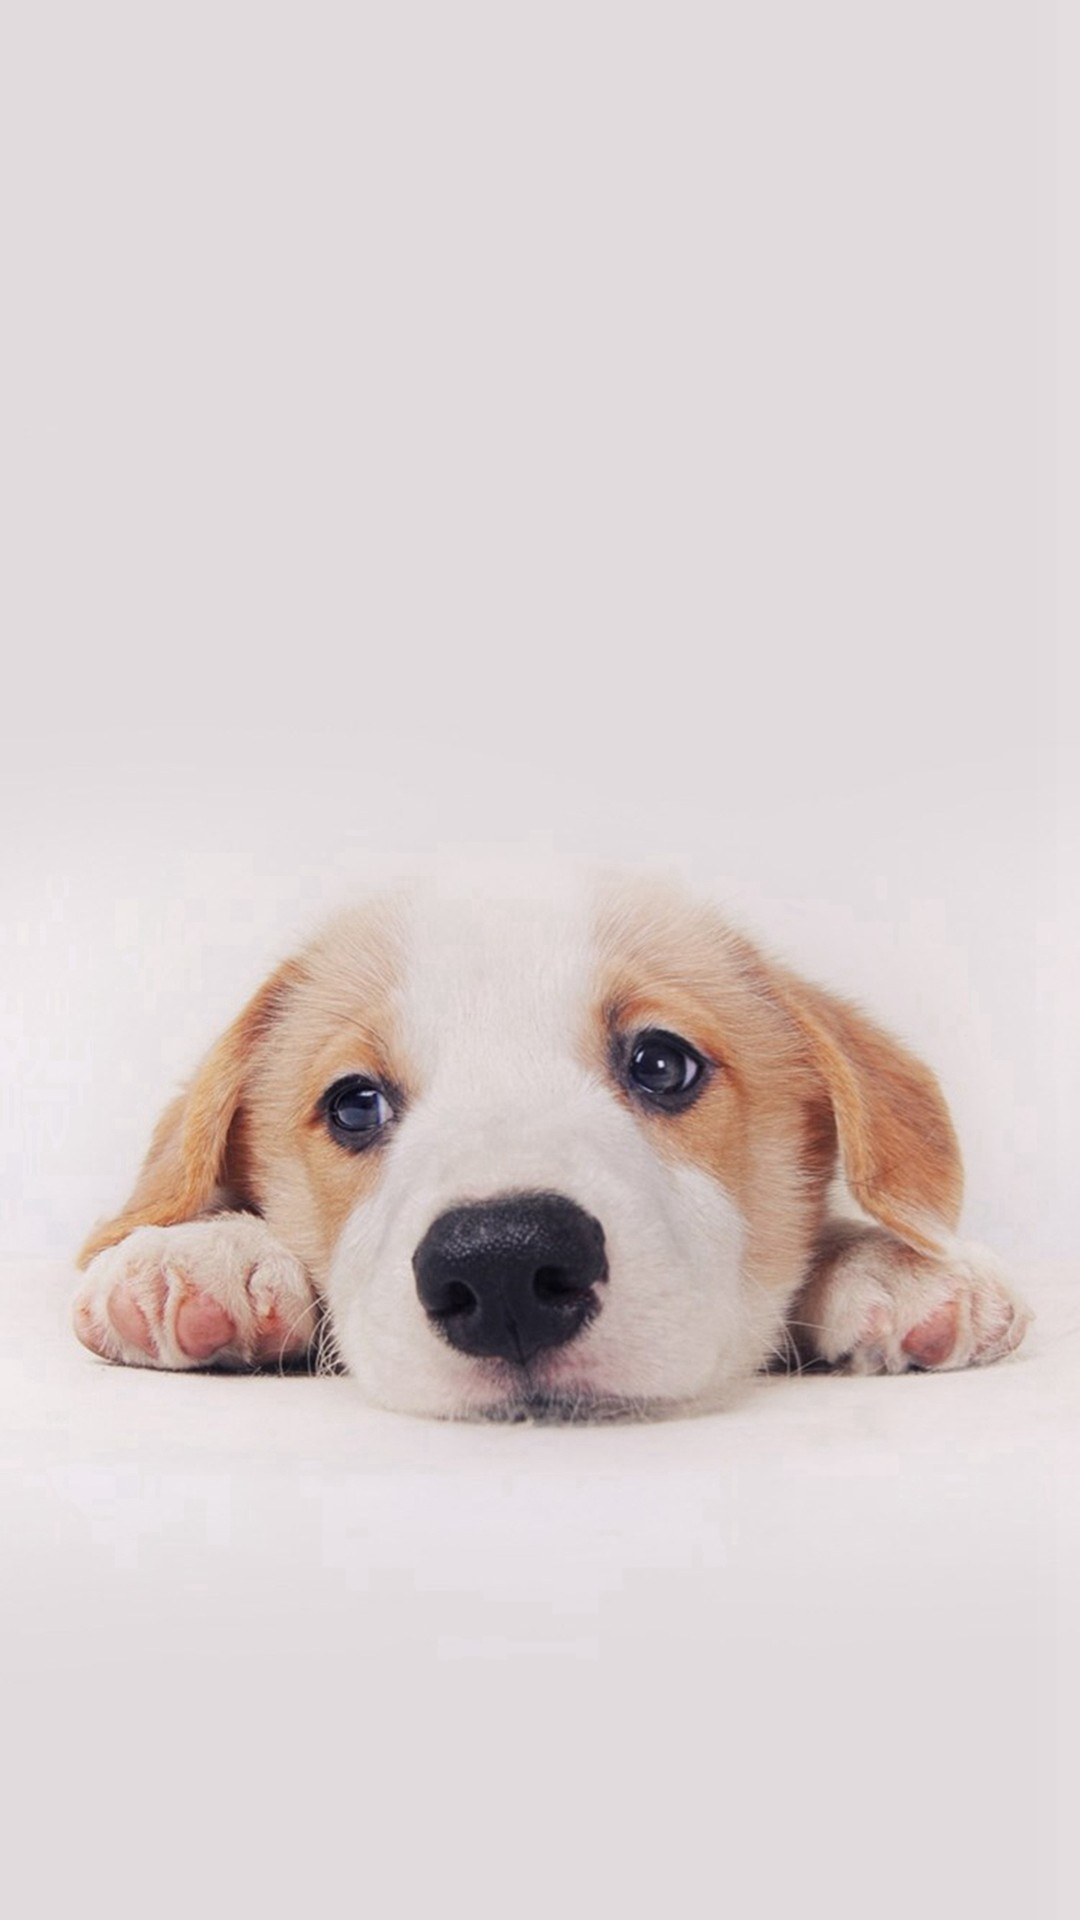 puppy dog wallpaper - photo #22